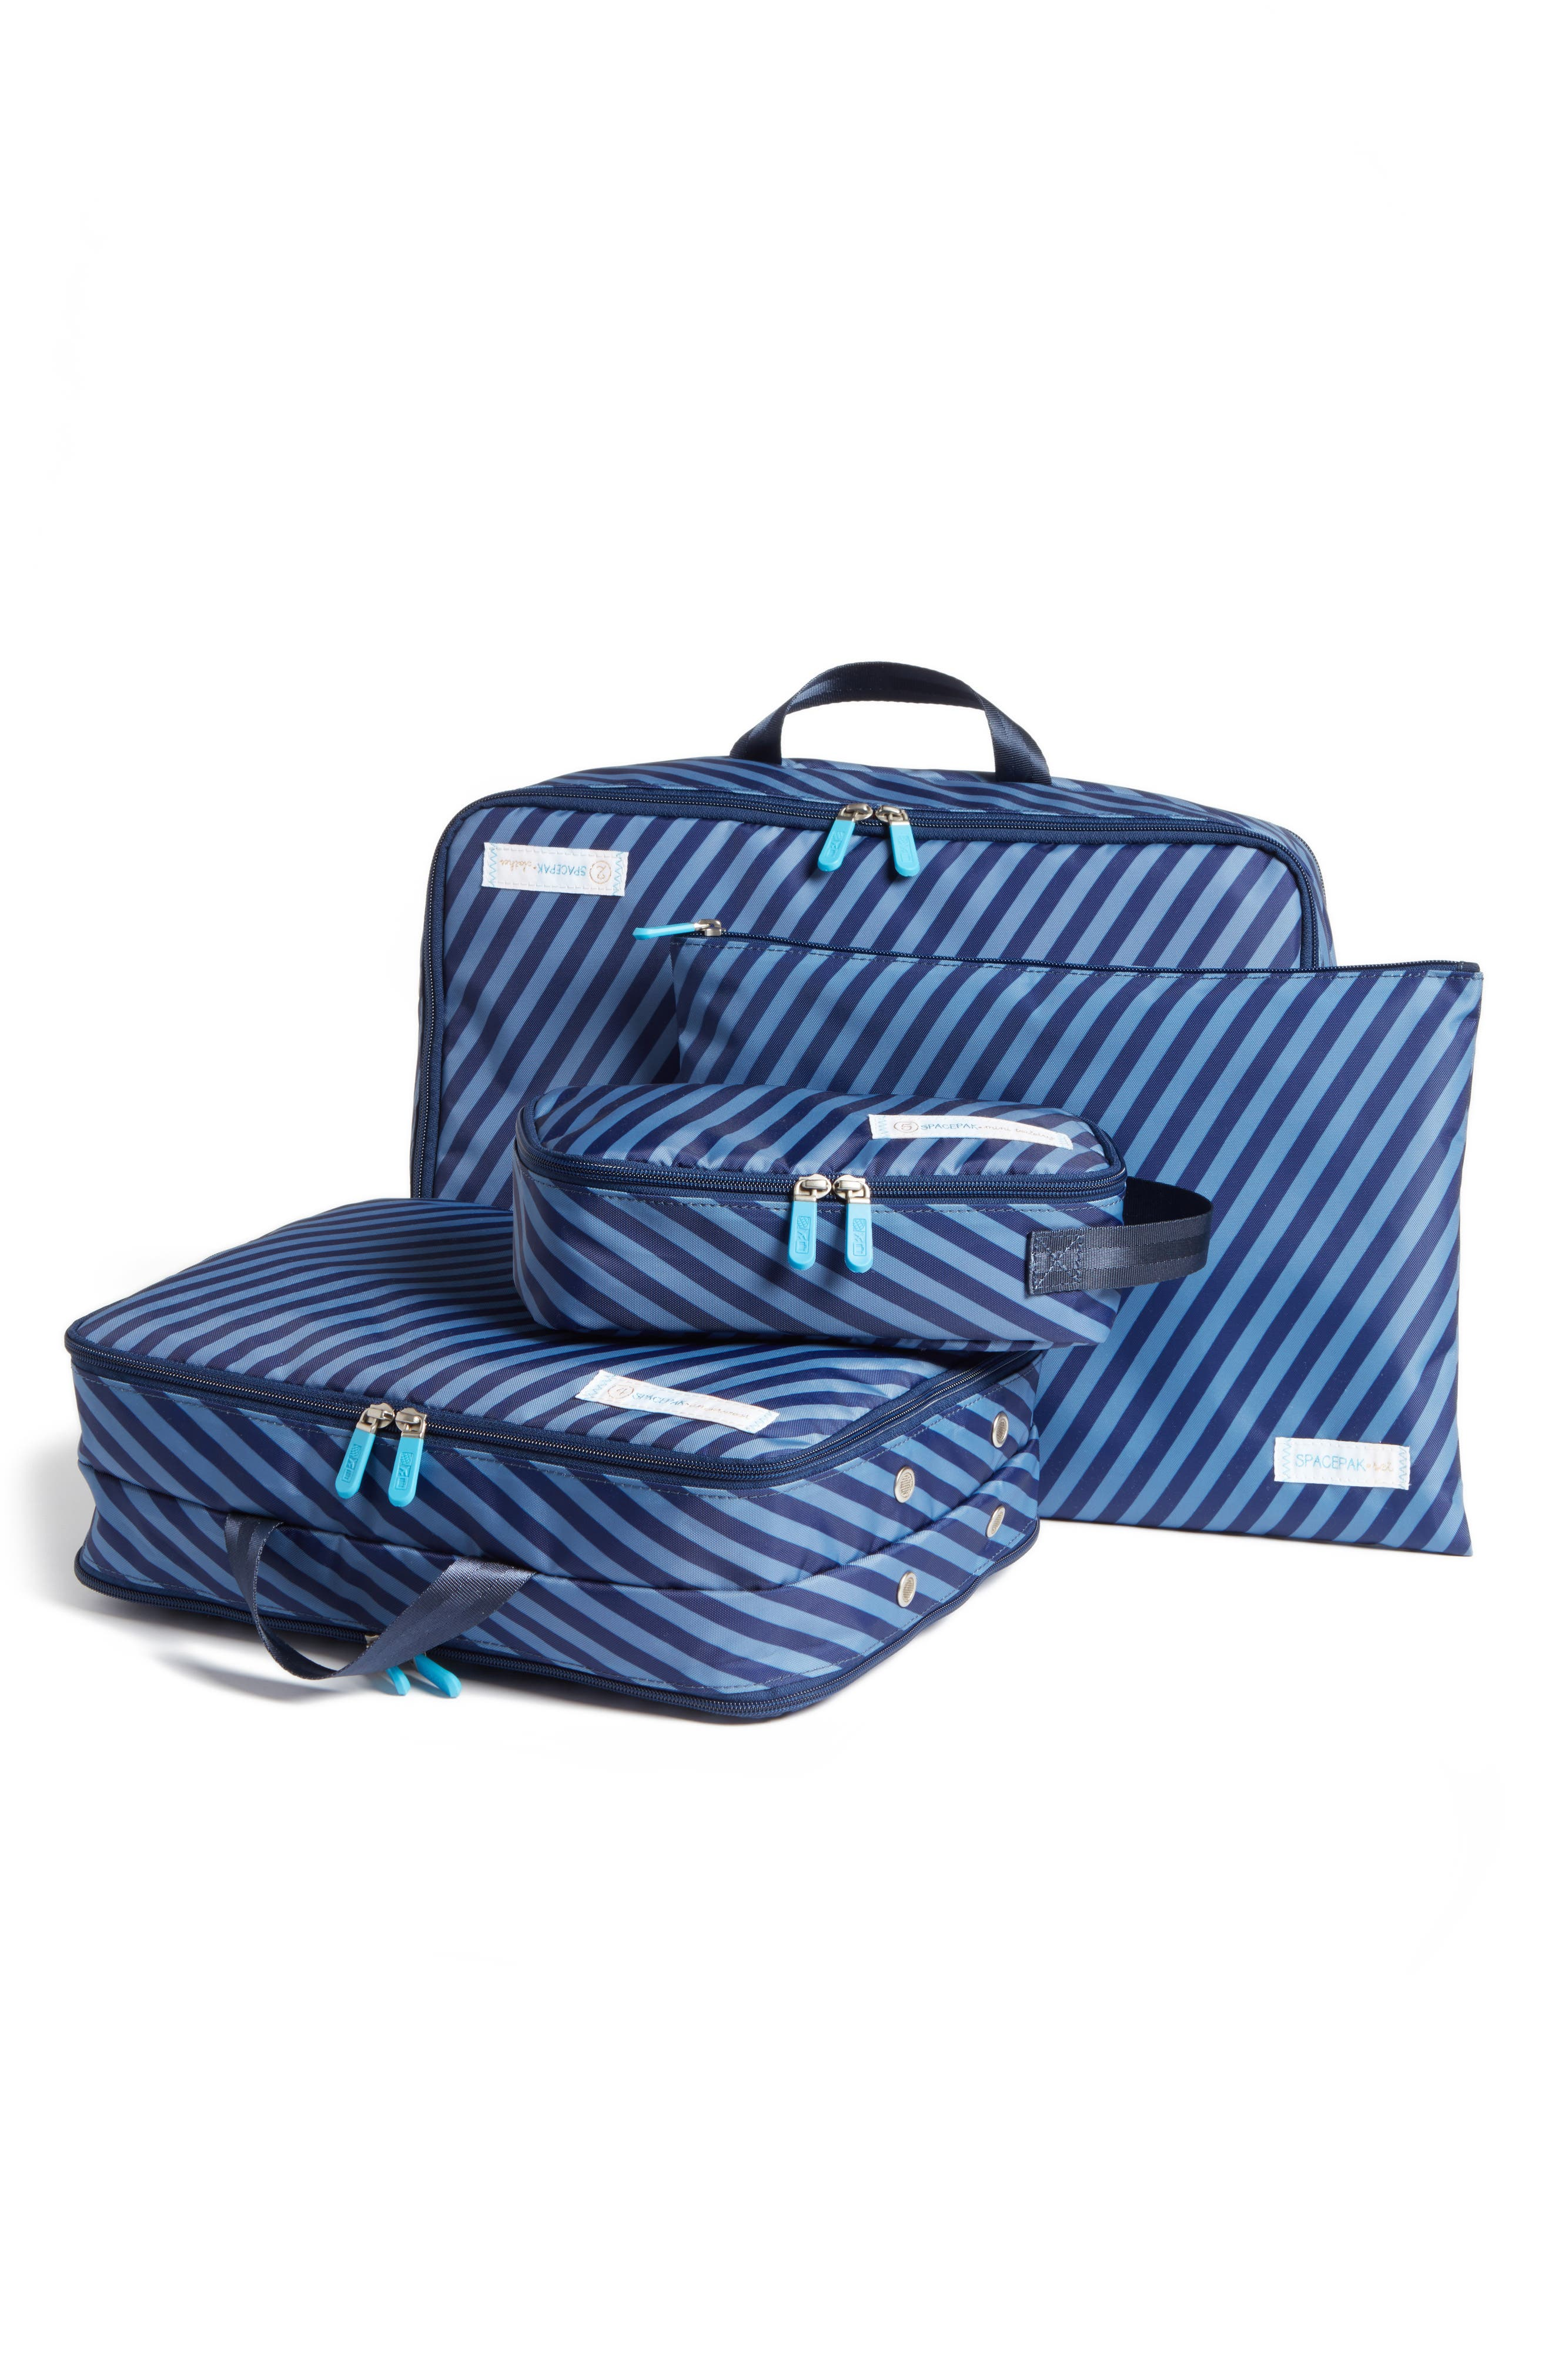 Spacepak Packing Compression Bag Set,                         Main,                         color,